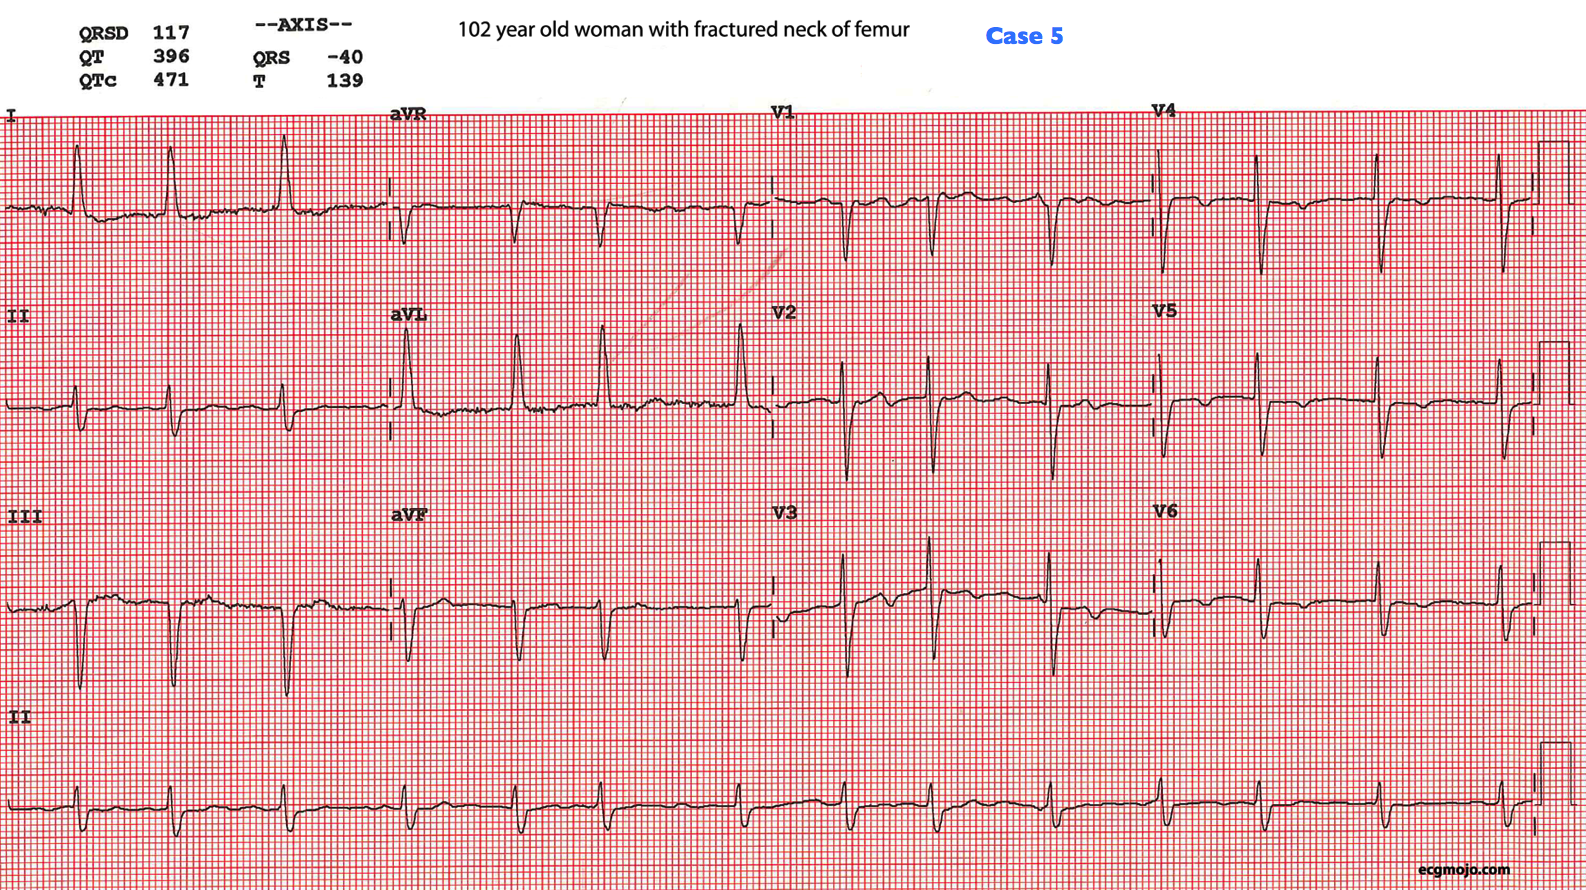 Figure 11: This is the ECG of a 102 year old woman with a fractured neck of femur